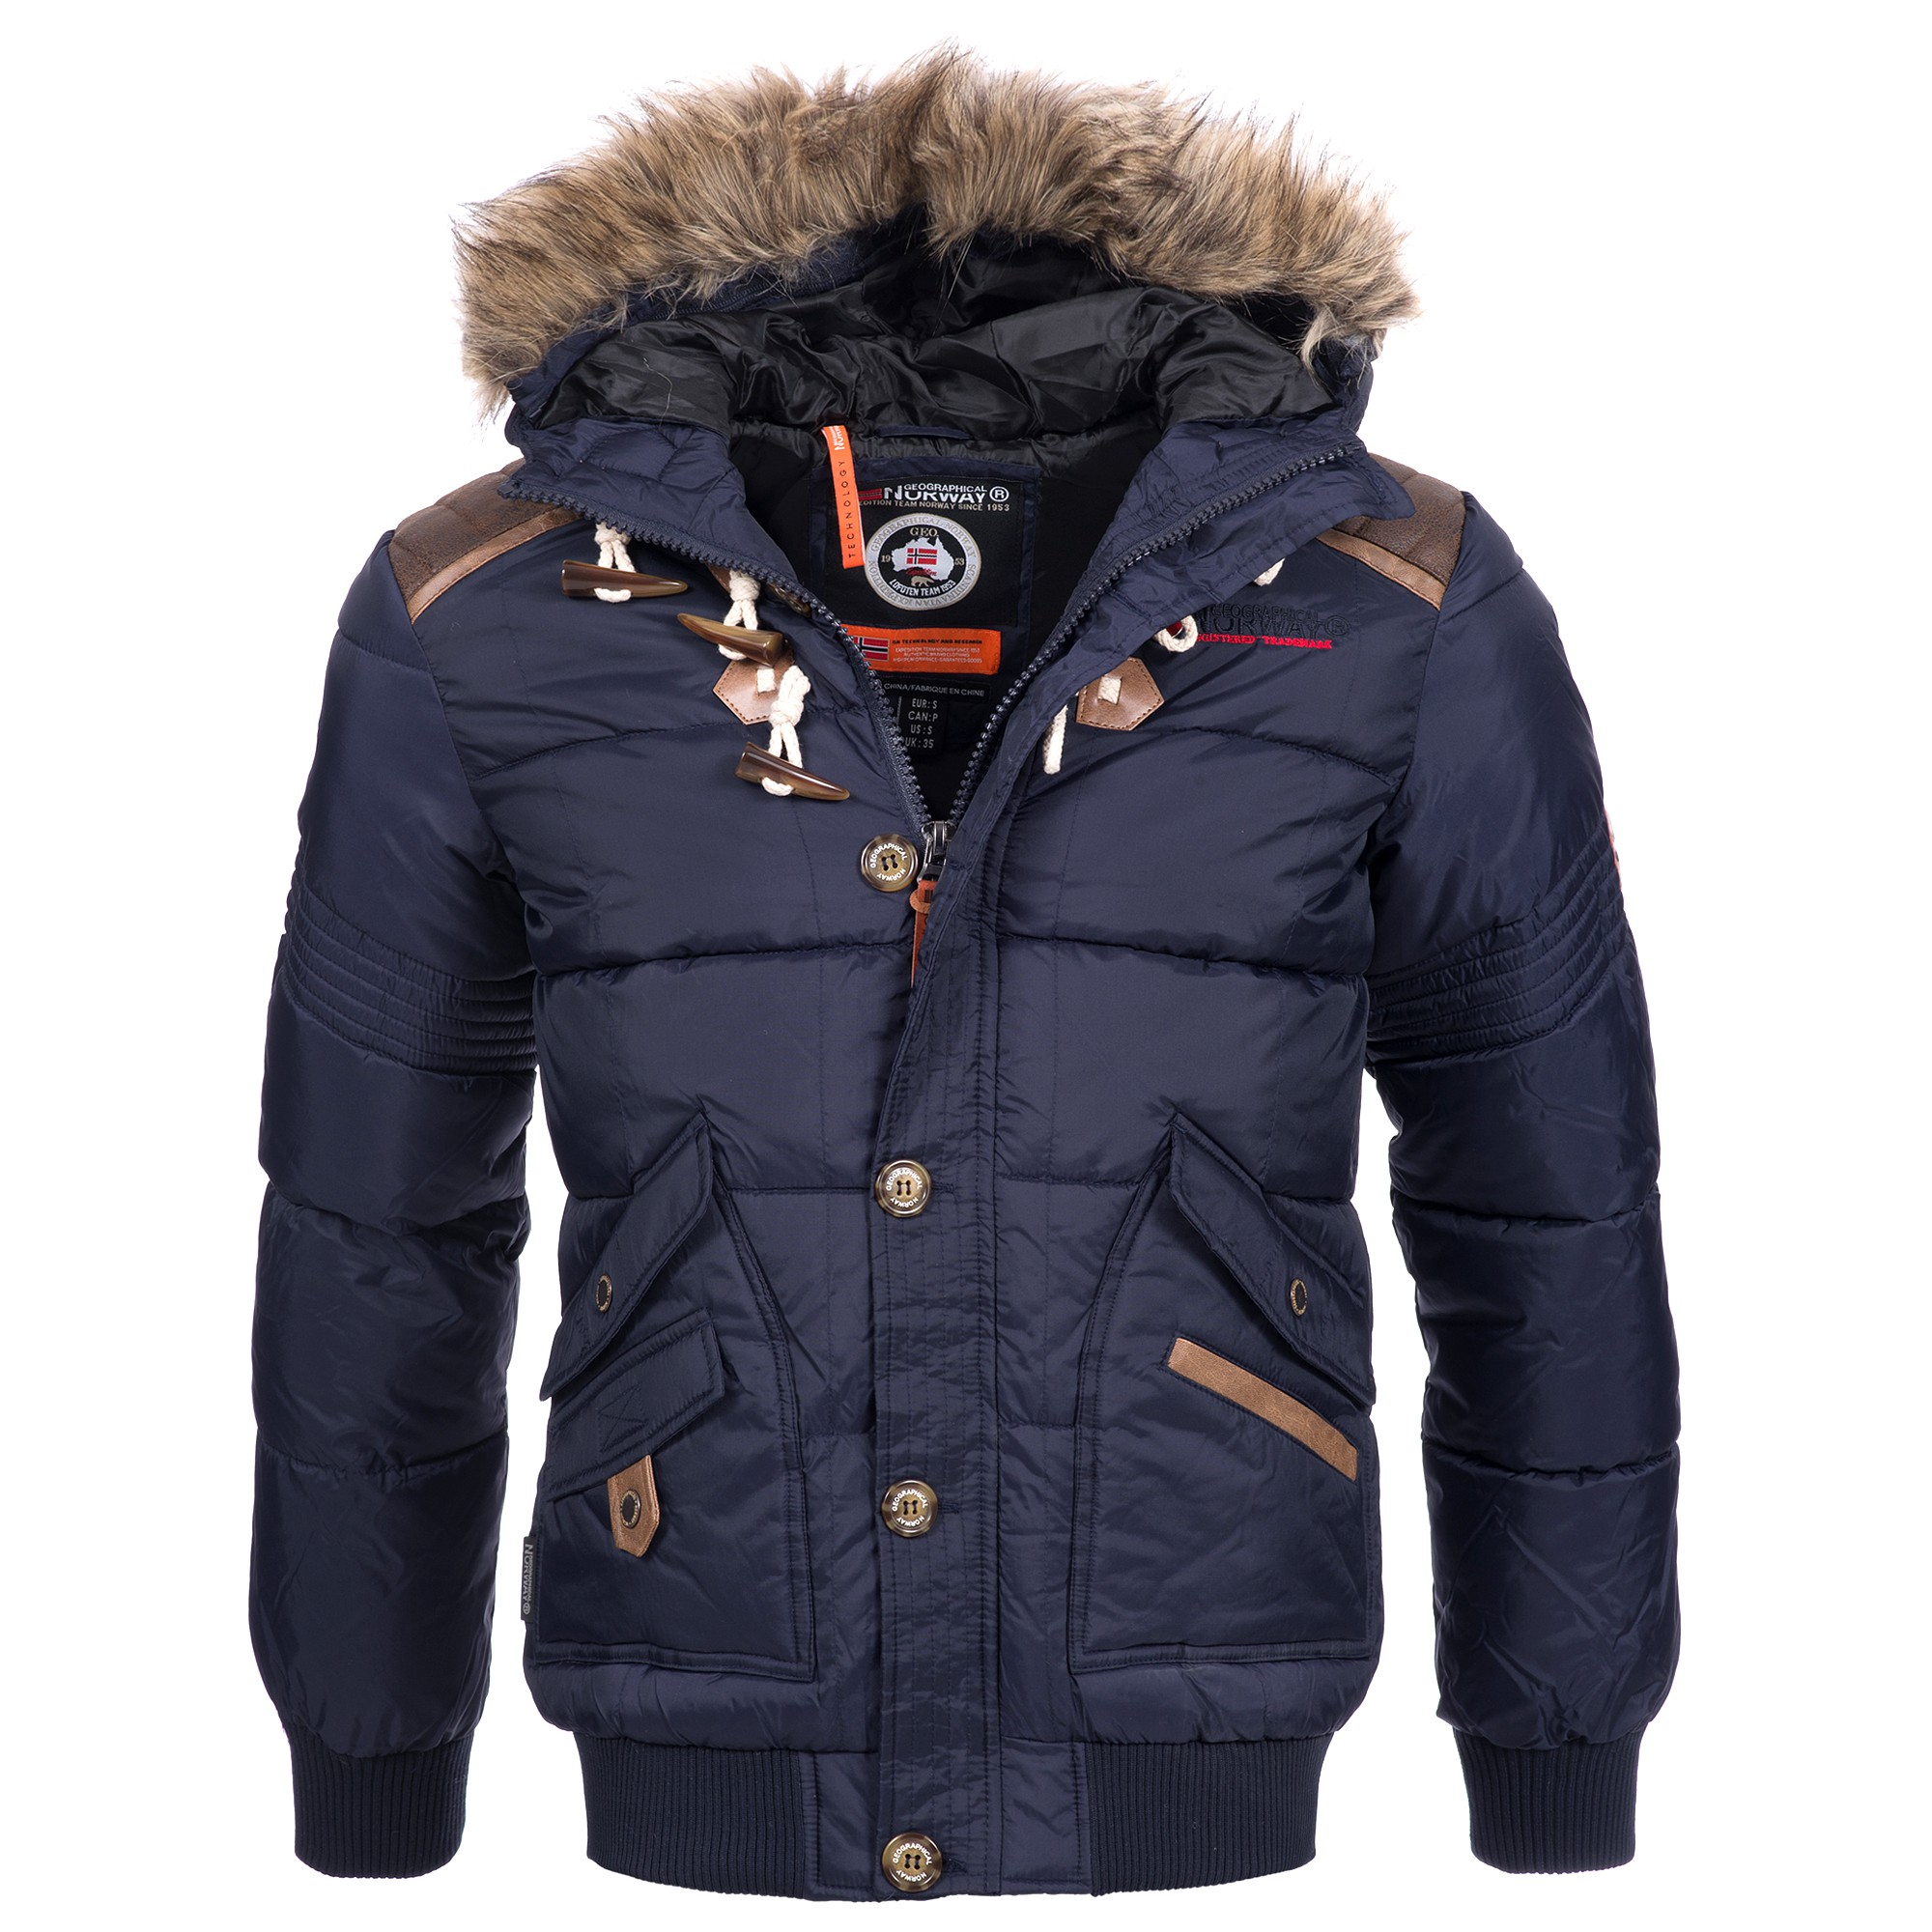 geographical norway belphegore herren winterjacke jacke steppjacke duffle s xxxl ebay. Black Bedroom Furniture Sets. Home Design Ideas